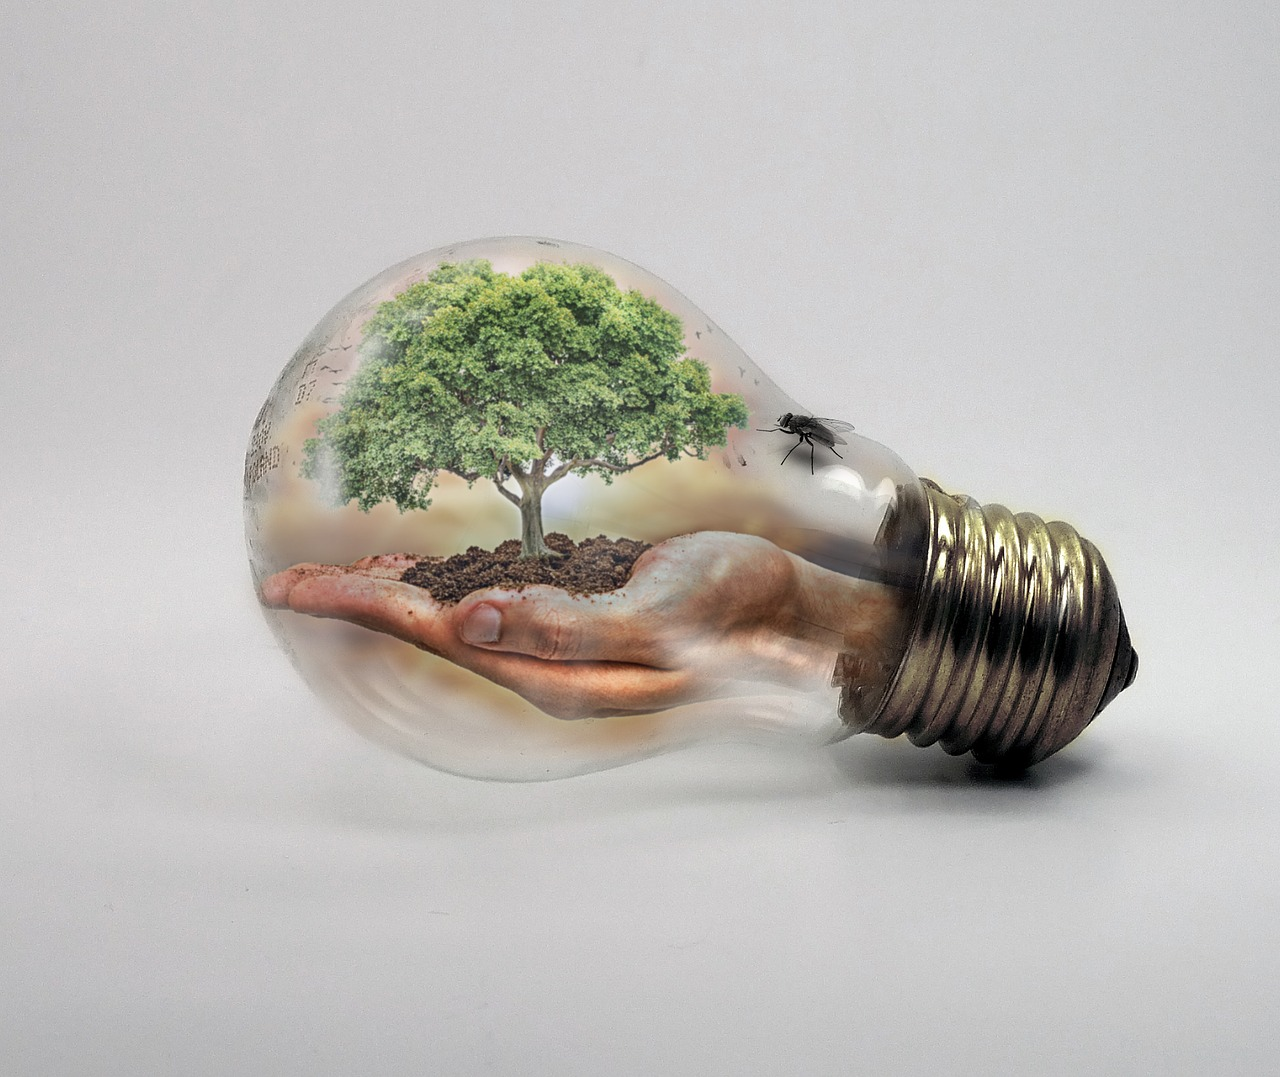 Explain the effects of climate change innovation